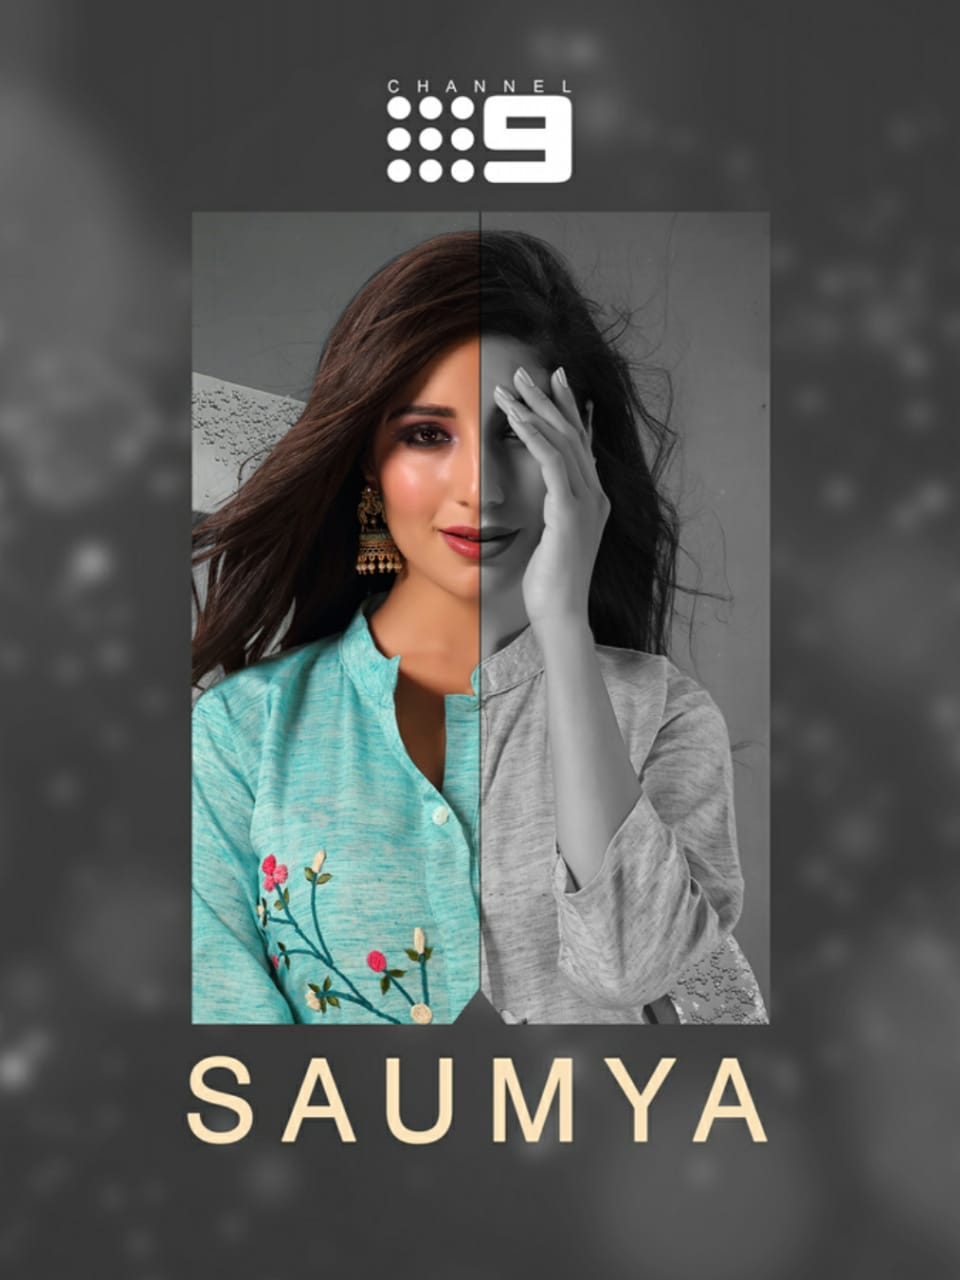 Channel 9 Presents Saumya Rayon Work Exclusive Collections For Kurti With Plazzo